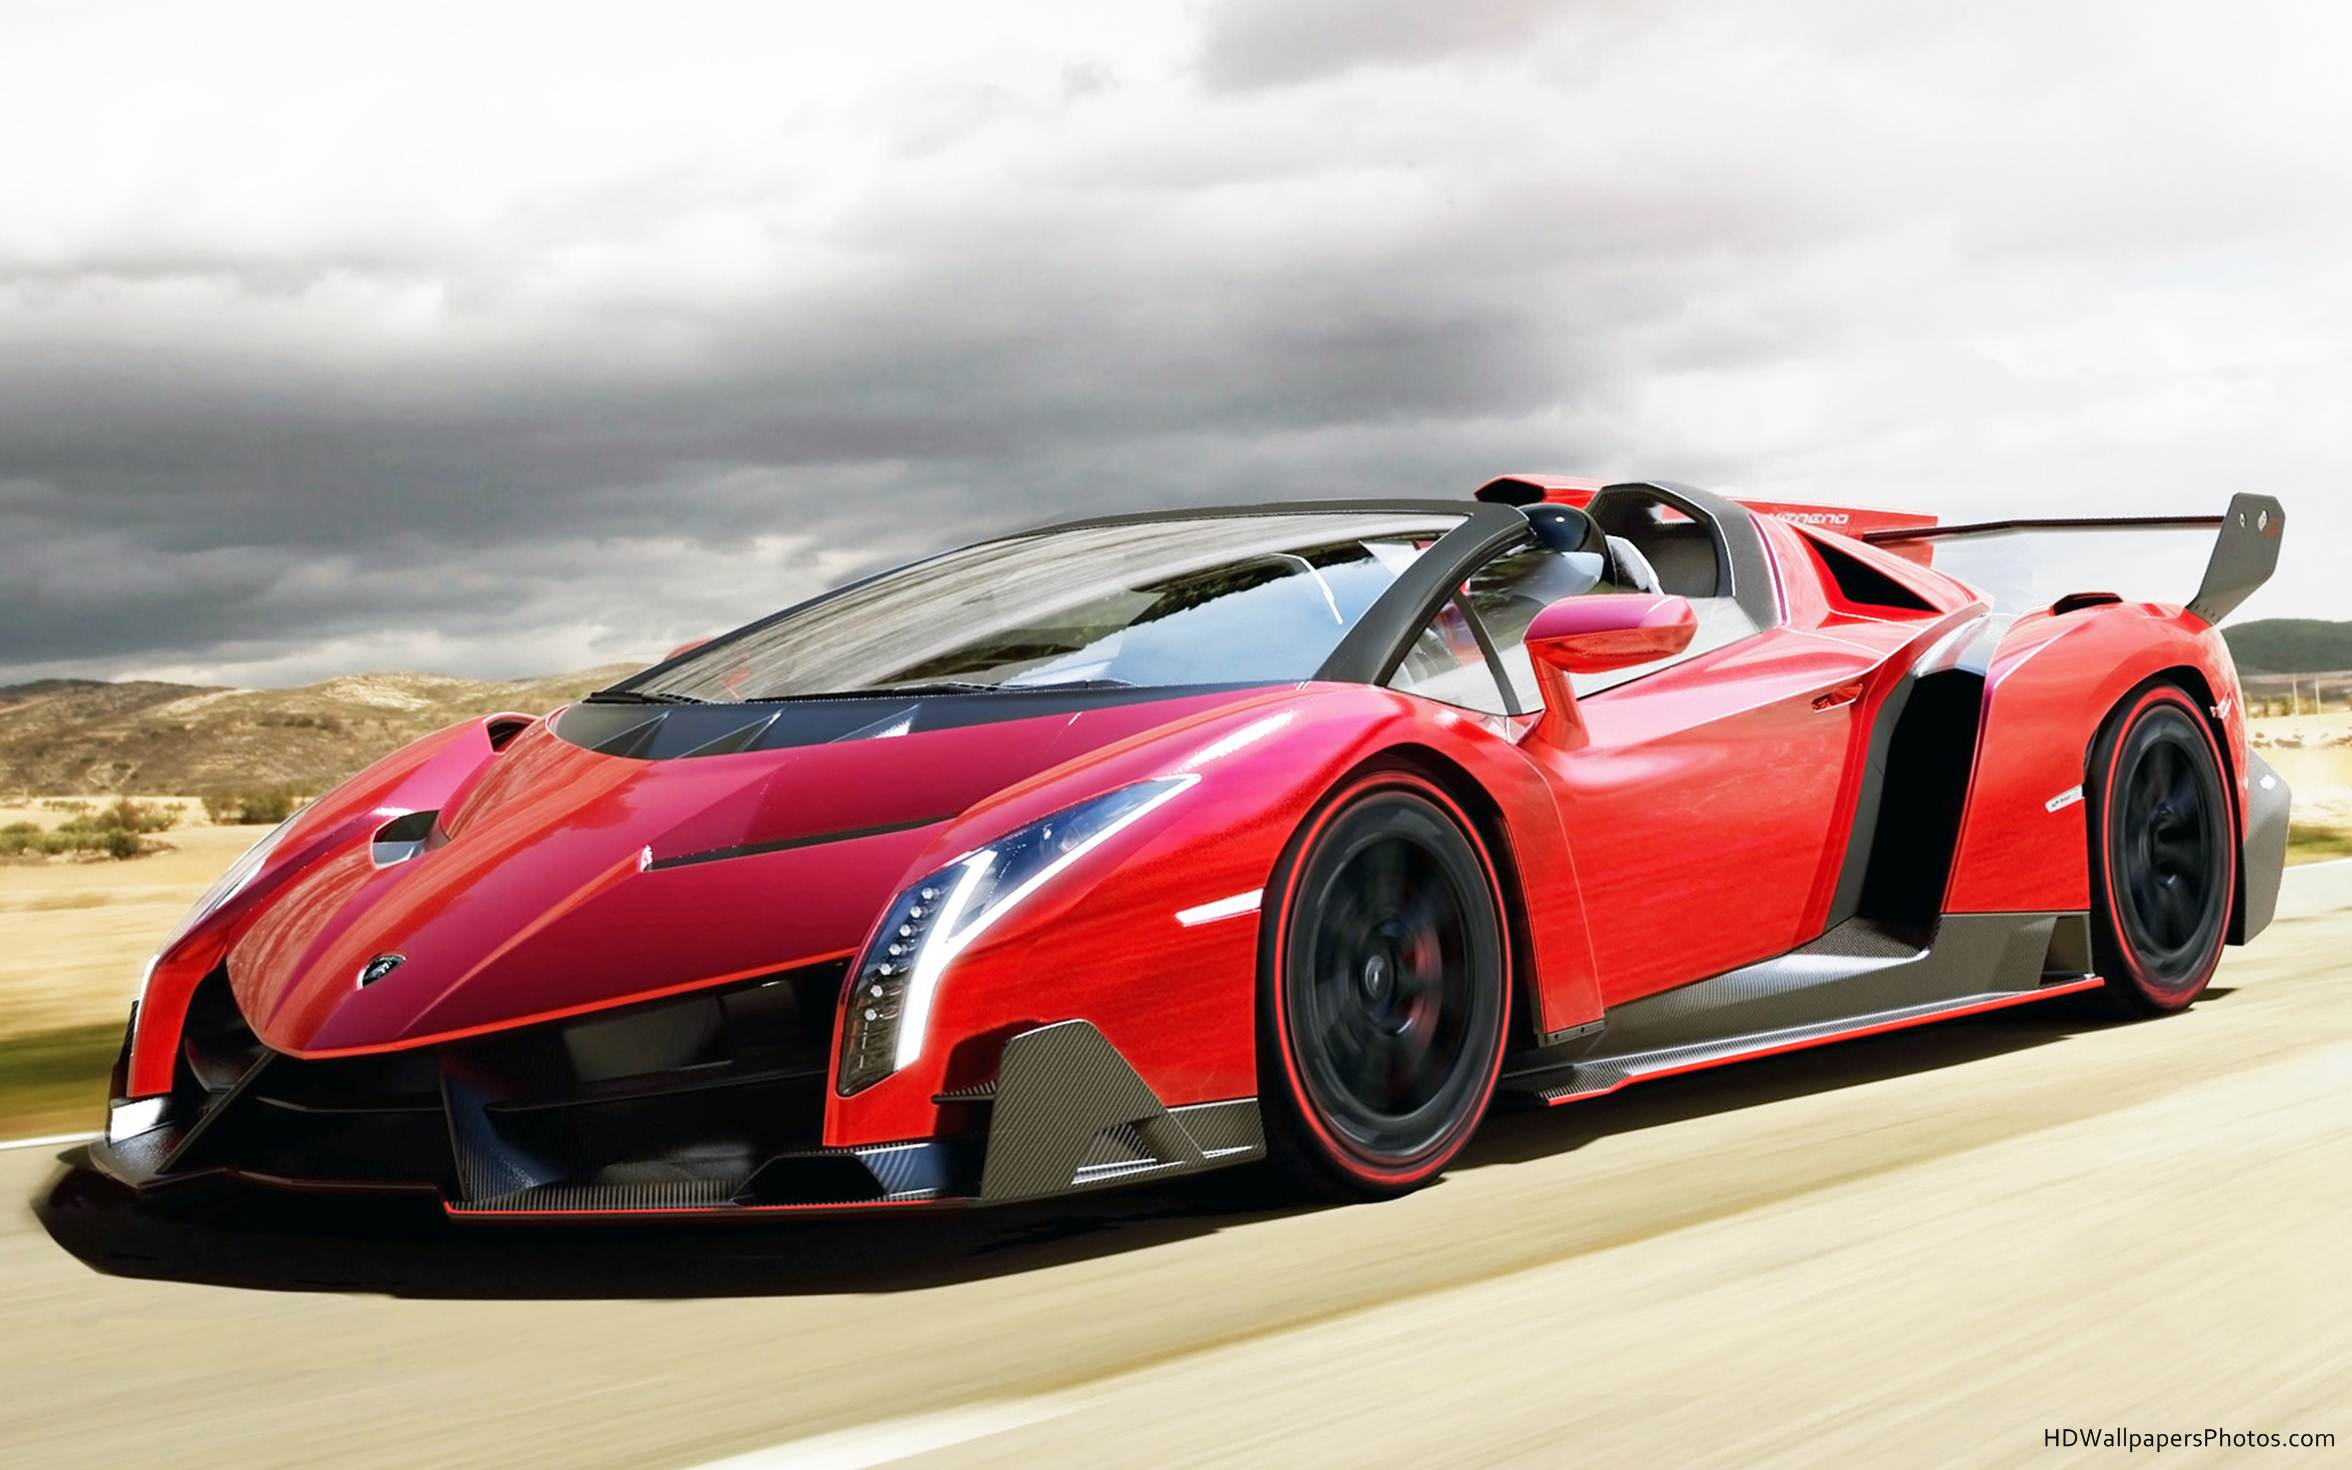 Lamborghini Veneo are furious hot cars